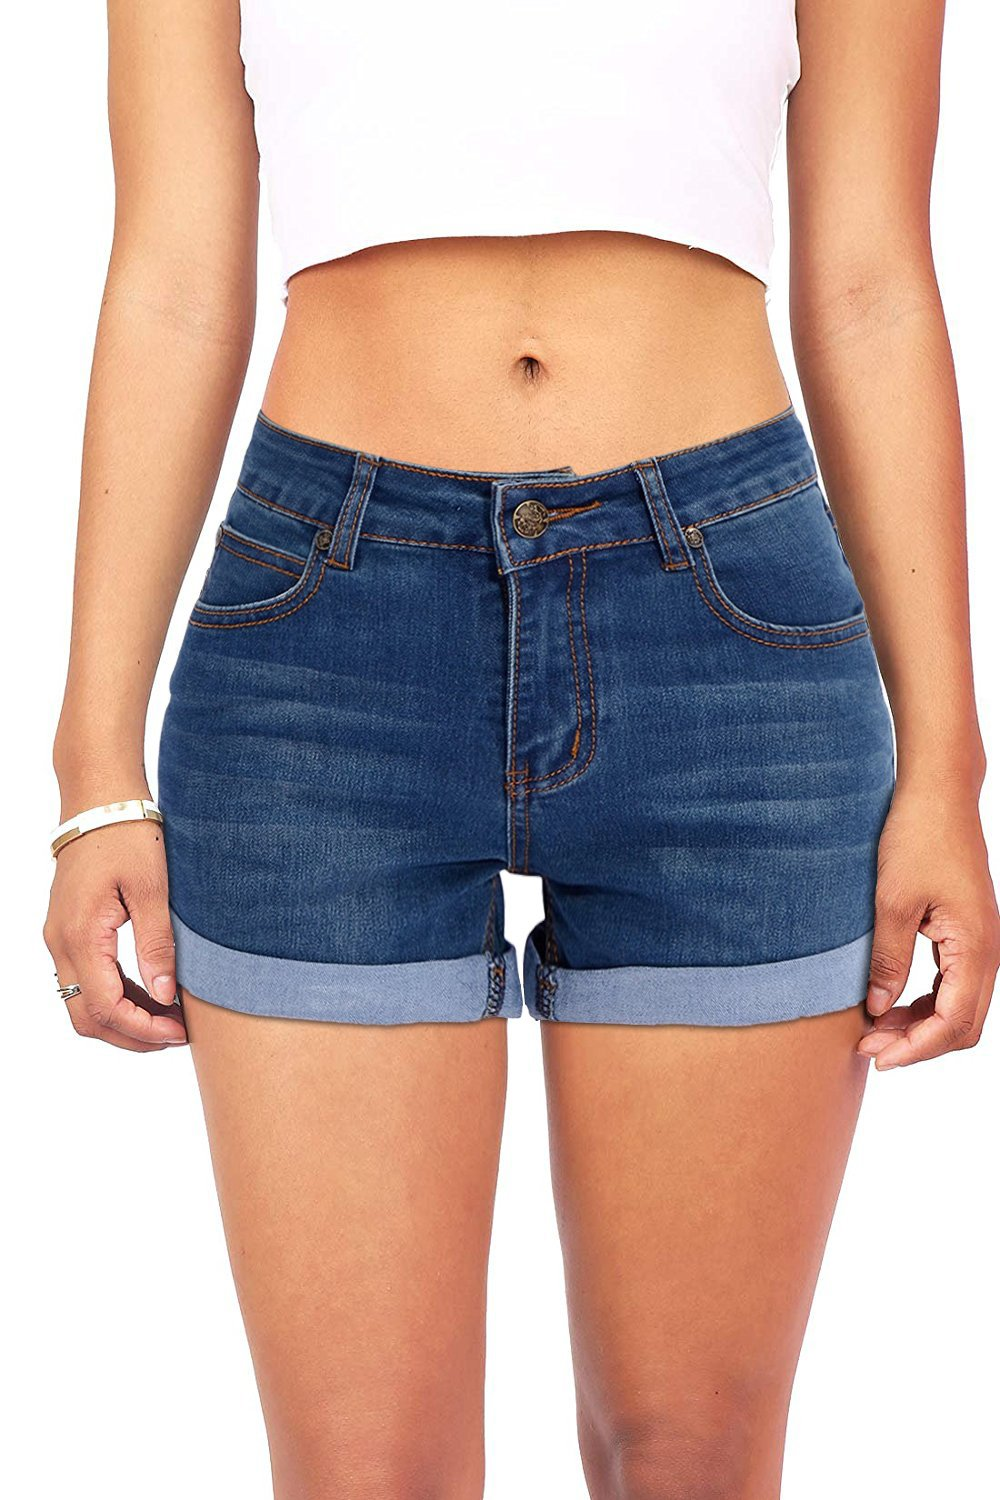 VEAWLL Women's Basic Stretched Mid-Rise Denim Shorts with Pockets (S,Dark Denim)